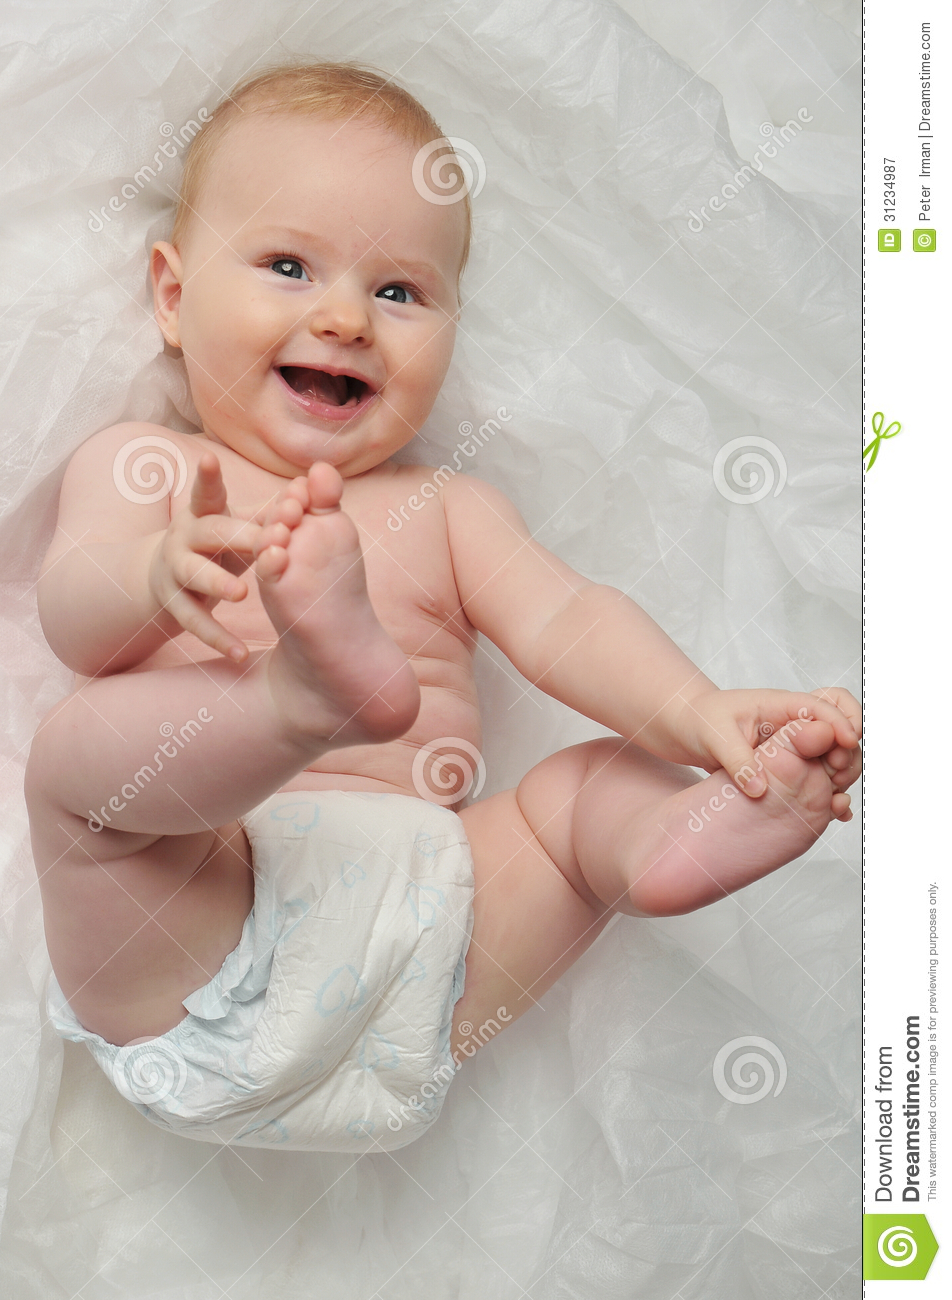 Cute Happy 7 Month Baby Girl Stock Image - Image of health ...